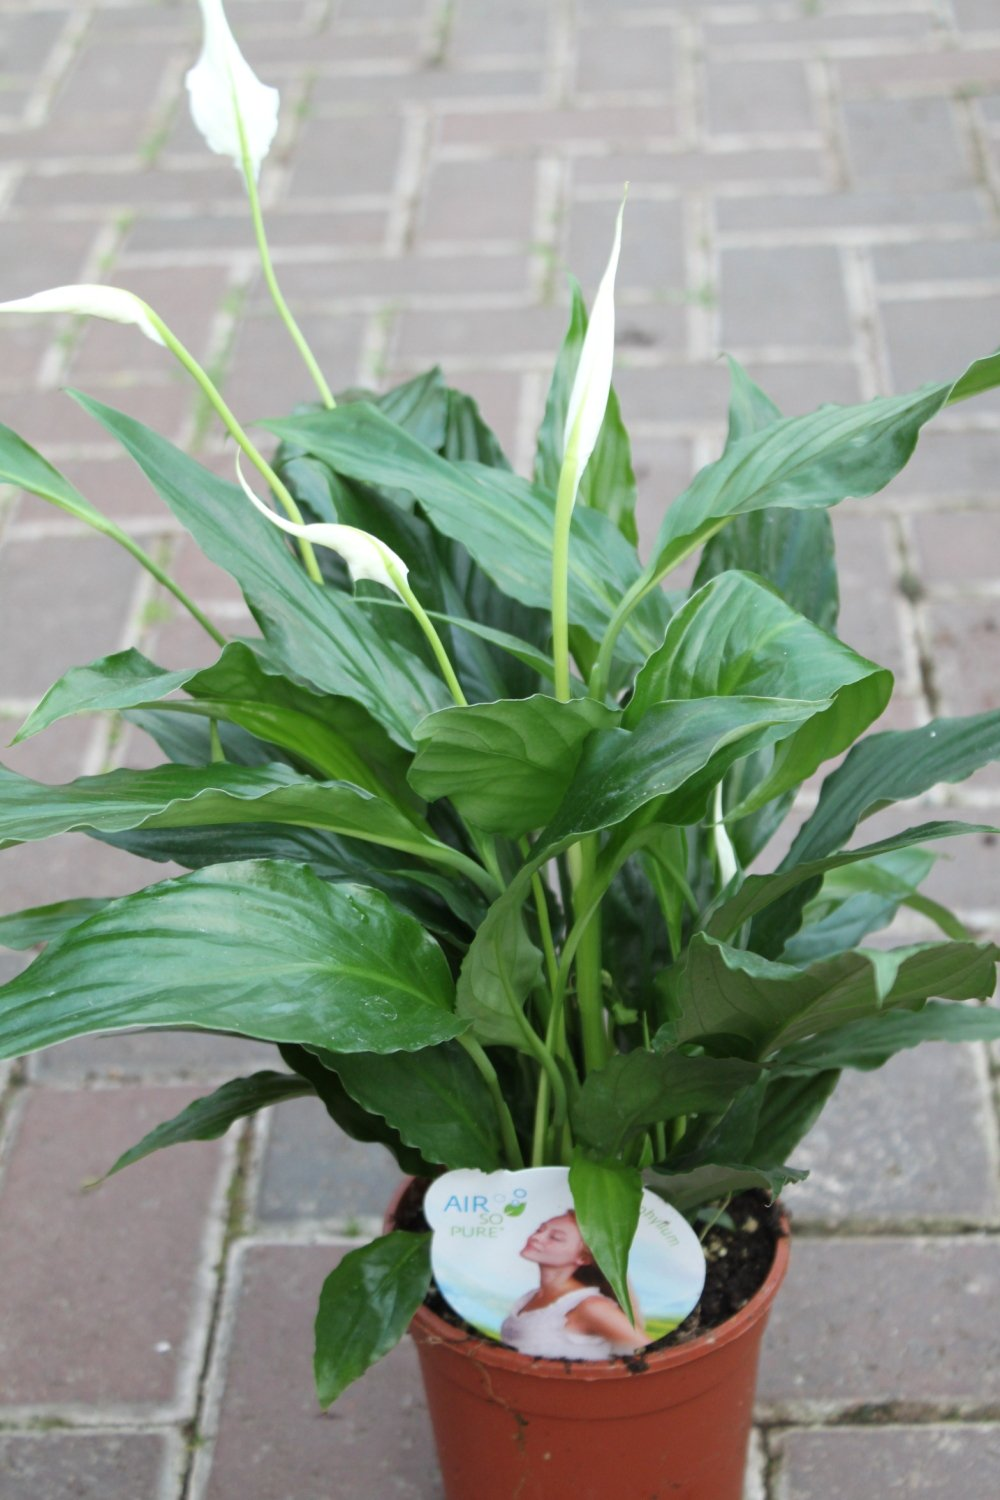 Peace lily amazon garden outdoors indoor plant house or office plant spathyphyllum 40cm tall peace lily izmirmasajfo